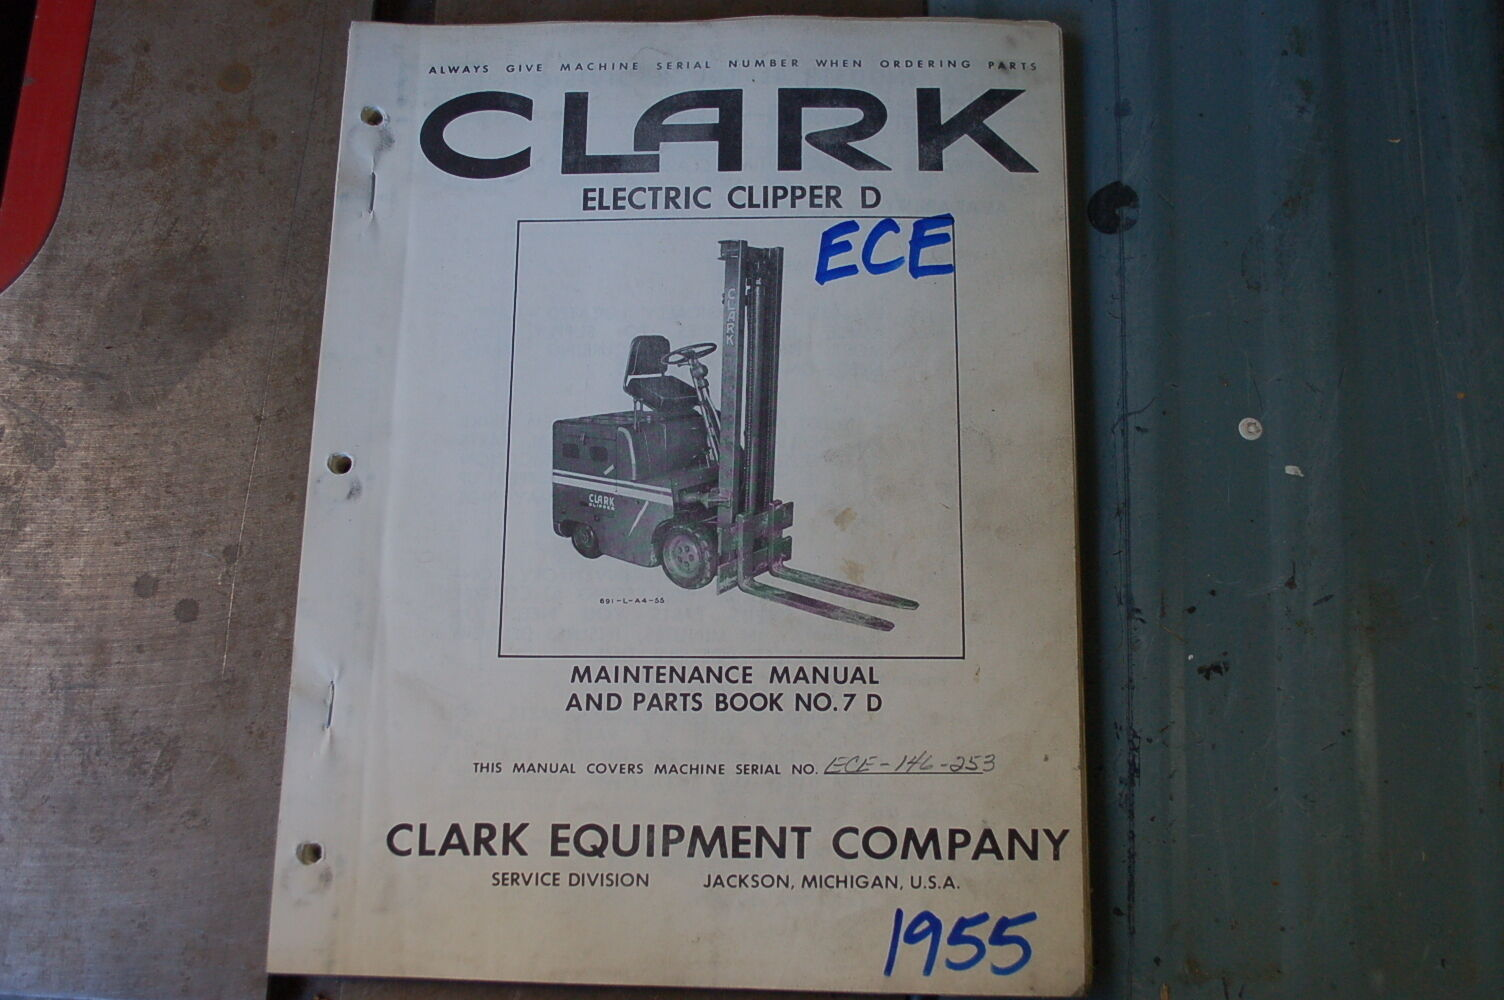 Clark Clipper Forklift Parts Diagram Electrical Wiring Diagrams Cgc25 Ece D Manual Book Catalog List Spare Lift Truck Yale Schematic